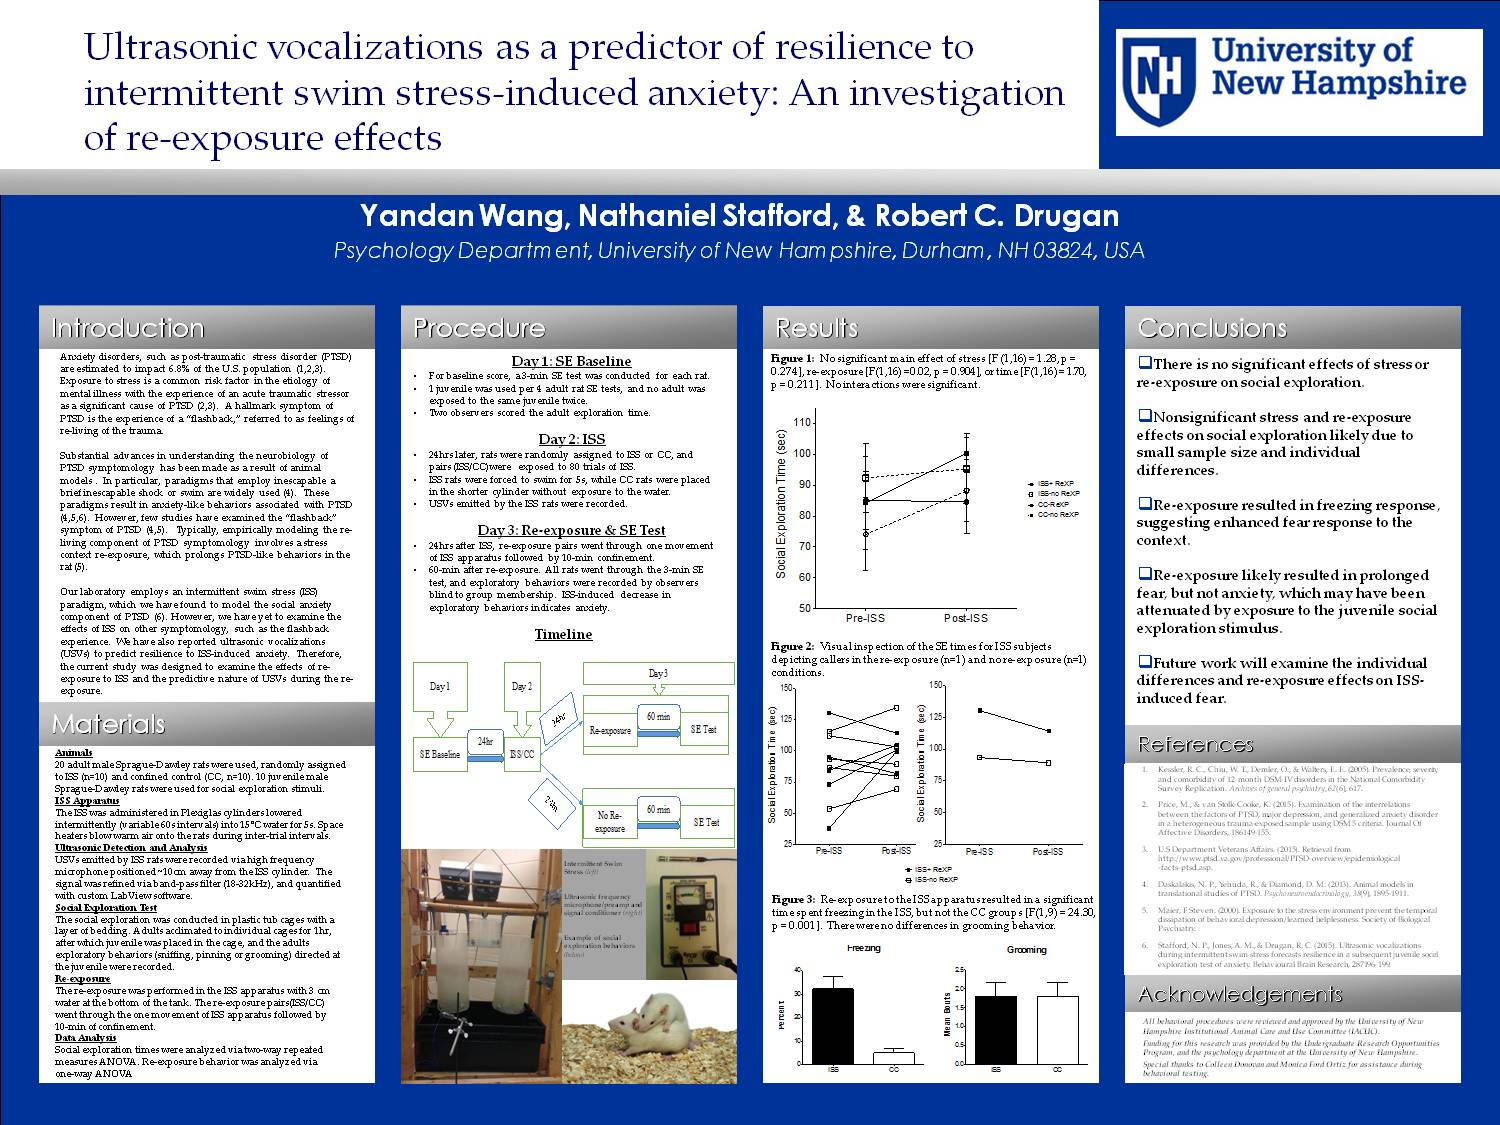 Ultrasonic Vocalizations As A Predictor Of Resilience To Intermittent Swim Stress-Induced Anxiety: An Investigation Of Re-Exposure Effects   by yzt2